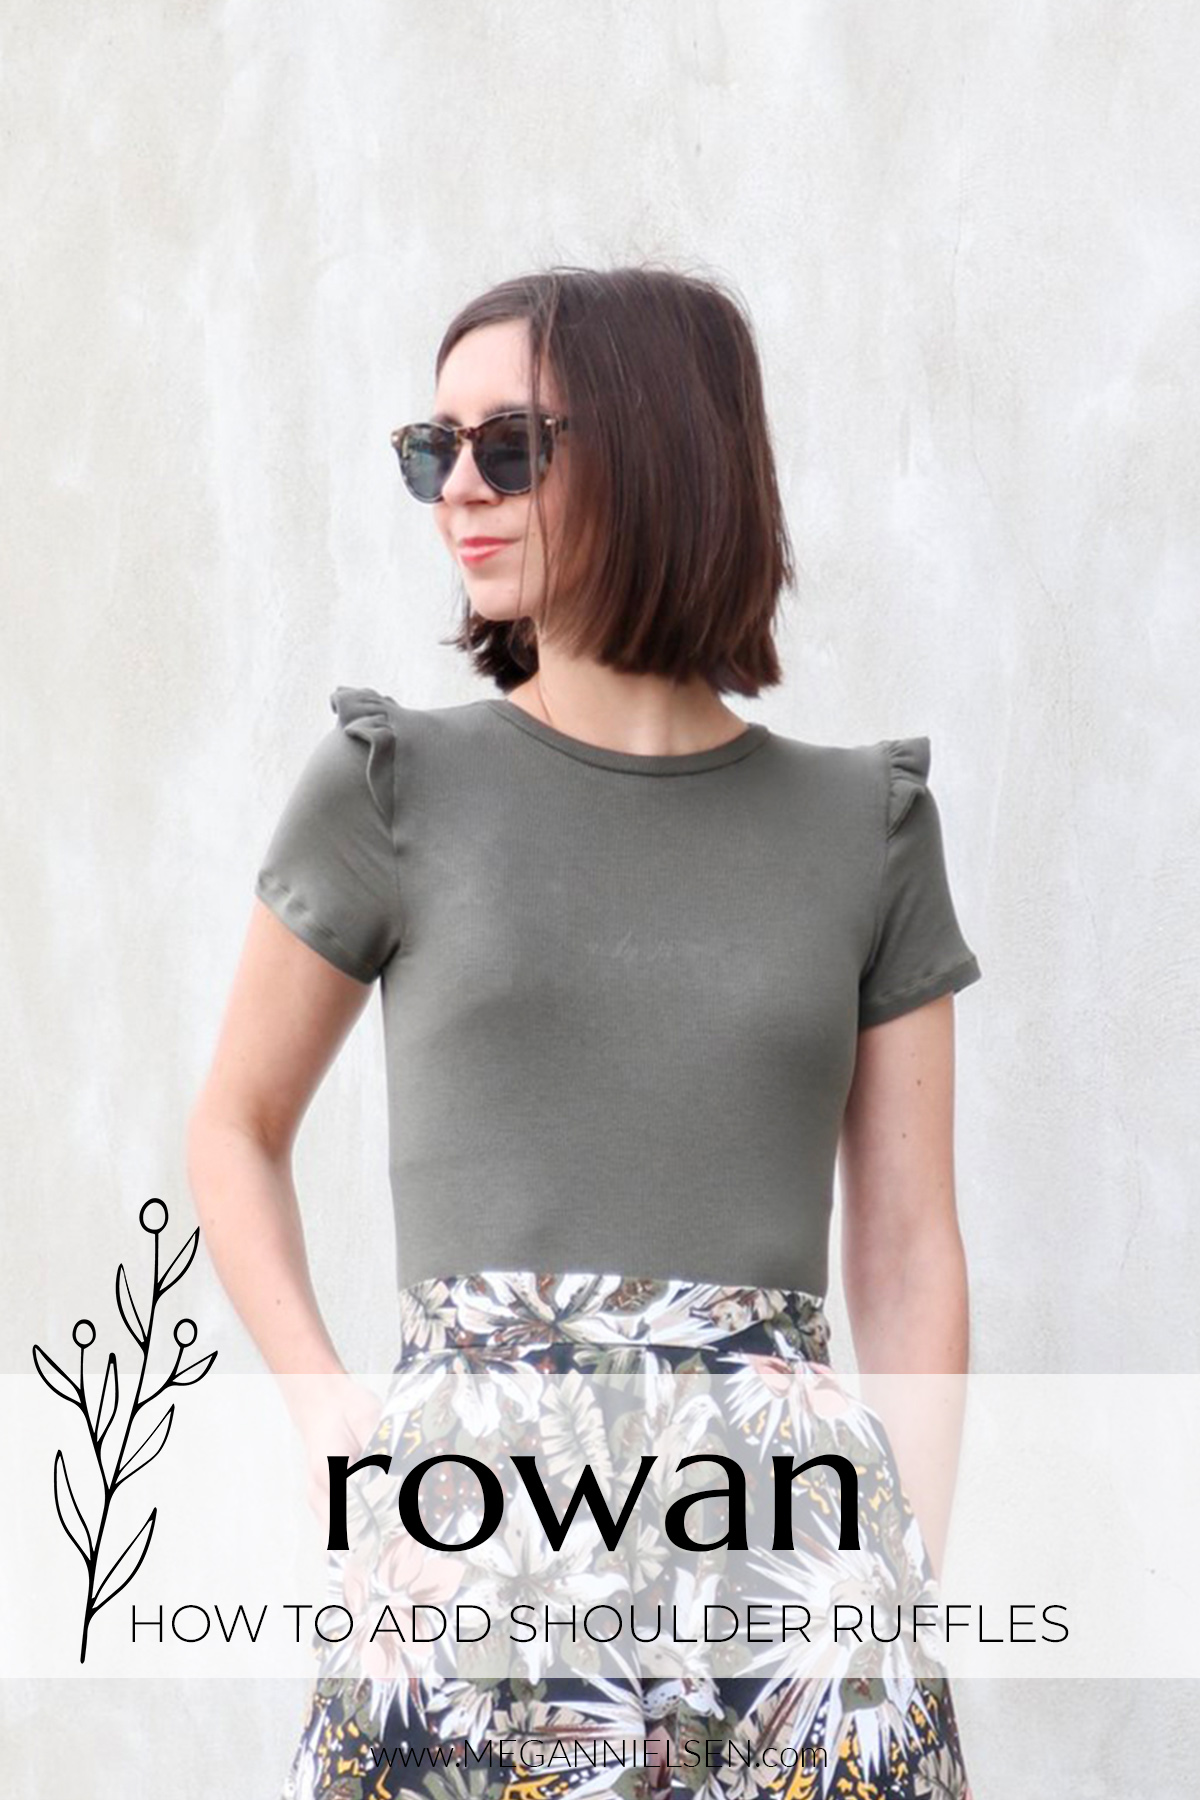 How to add shoulder ruffles to the Rowan pattern by Megan Nielsen patterns